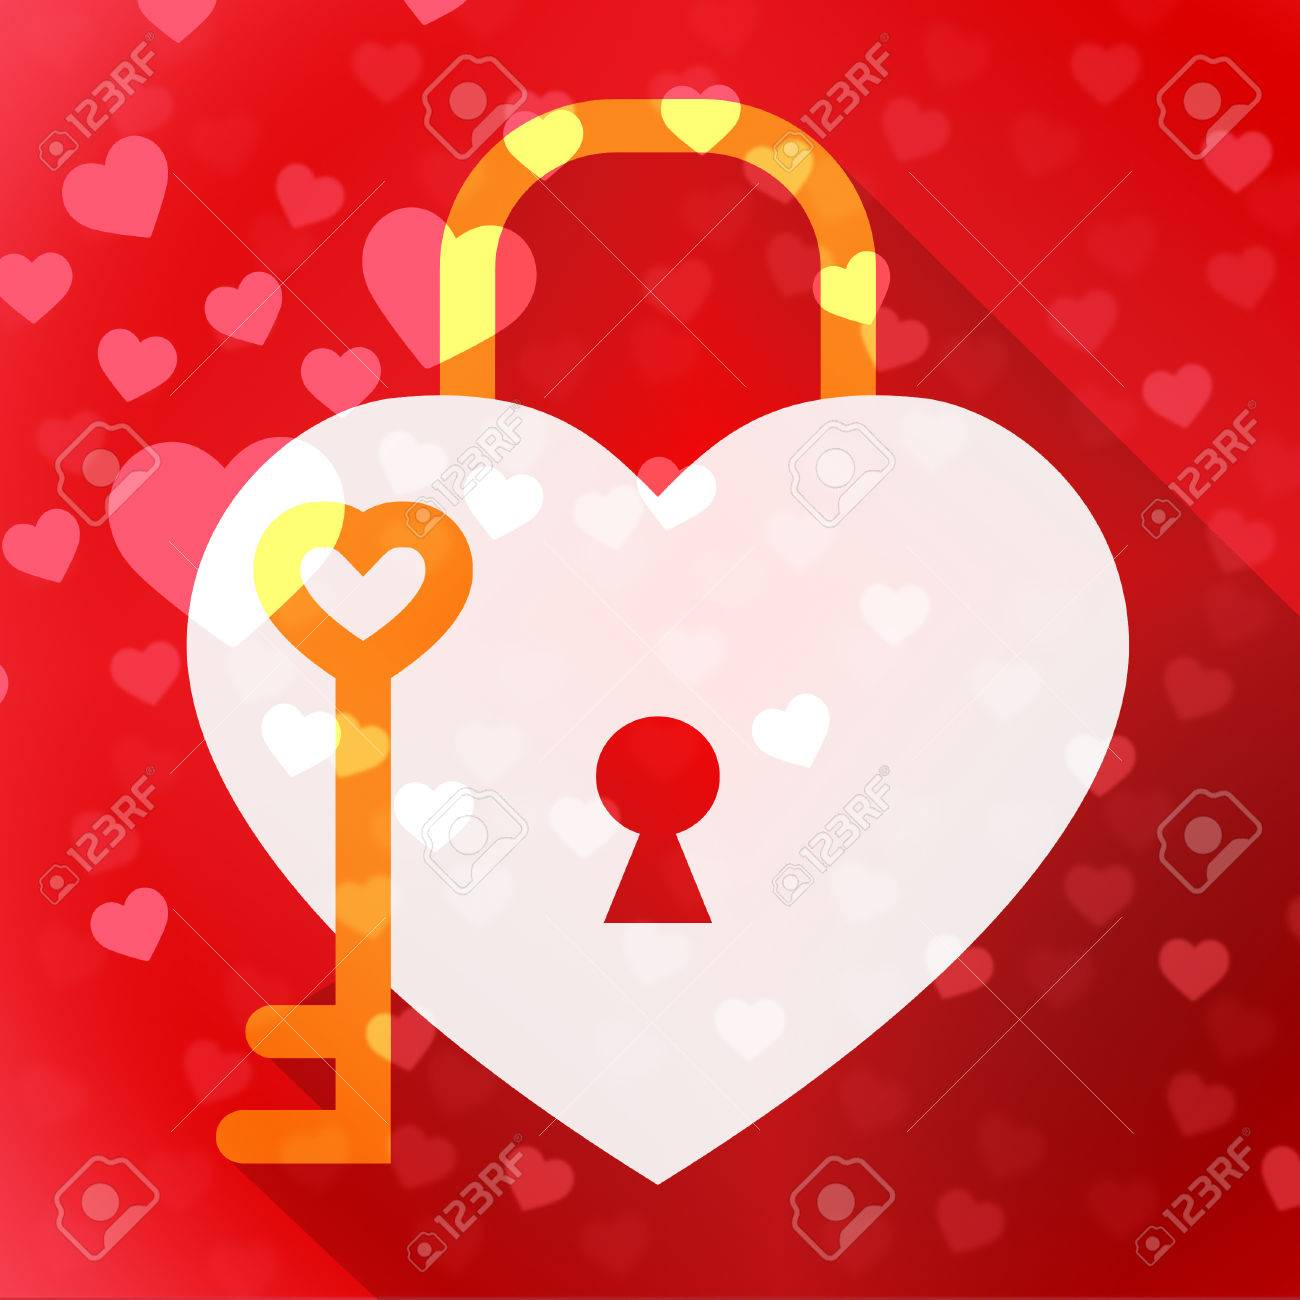 hearts lock meaning in love and adoration stock photo picture and